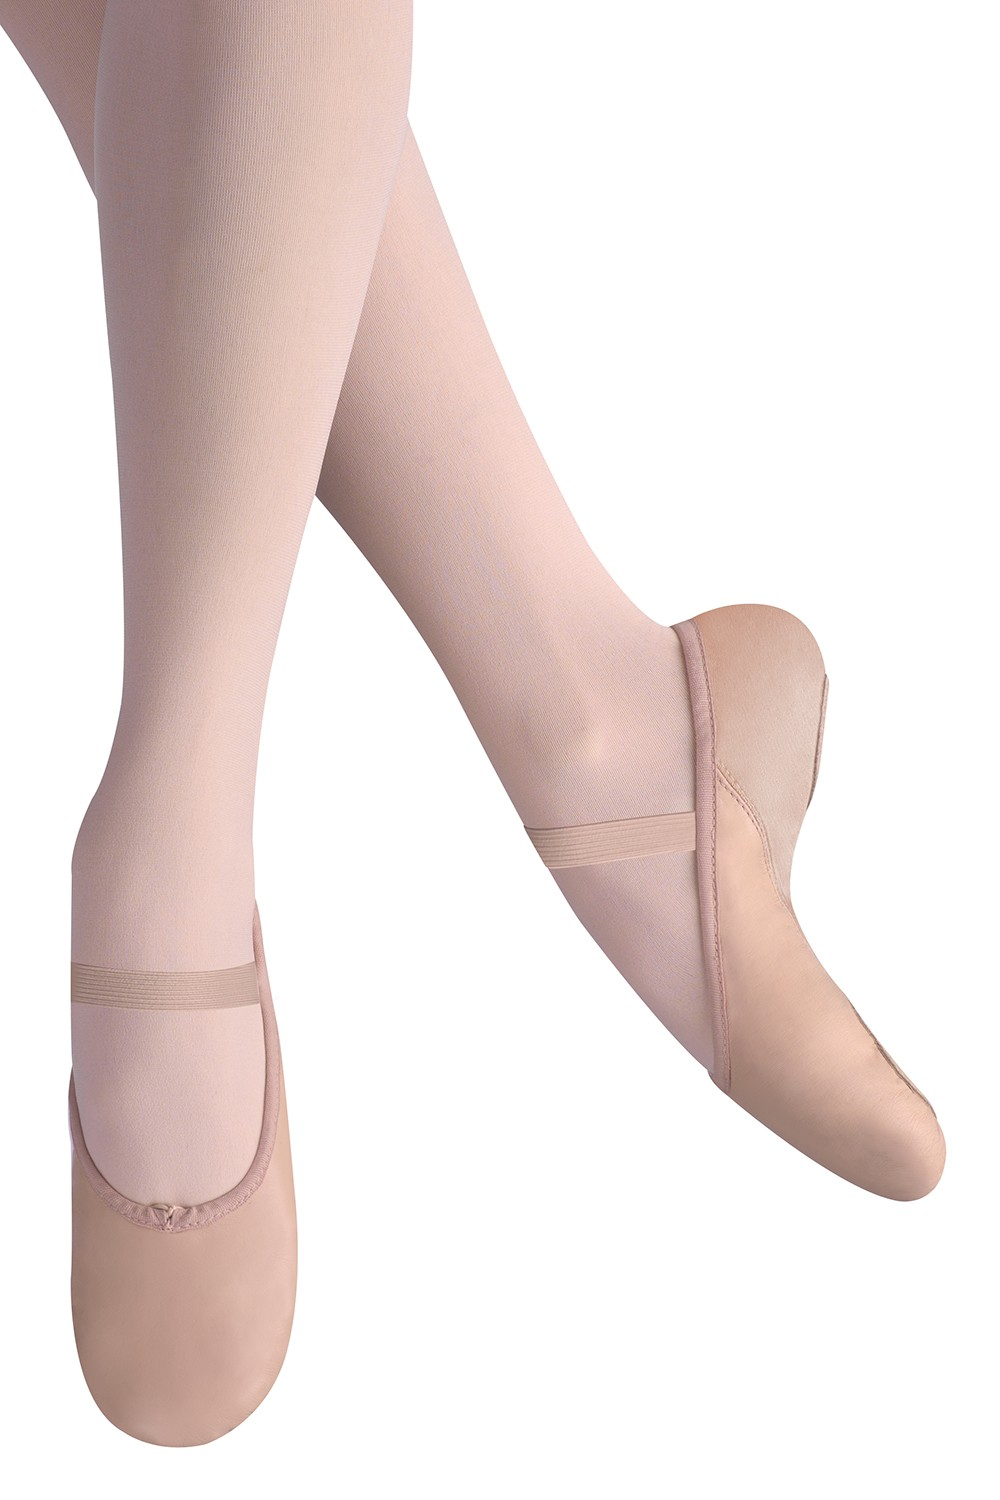 Stretch Women's Ballet Shoes